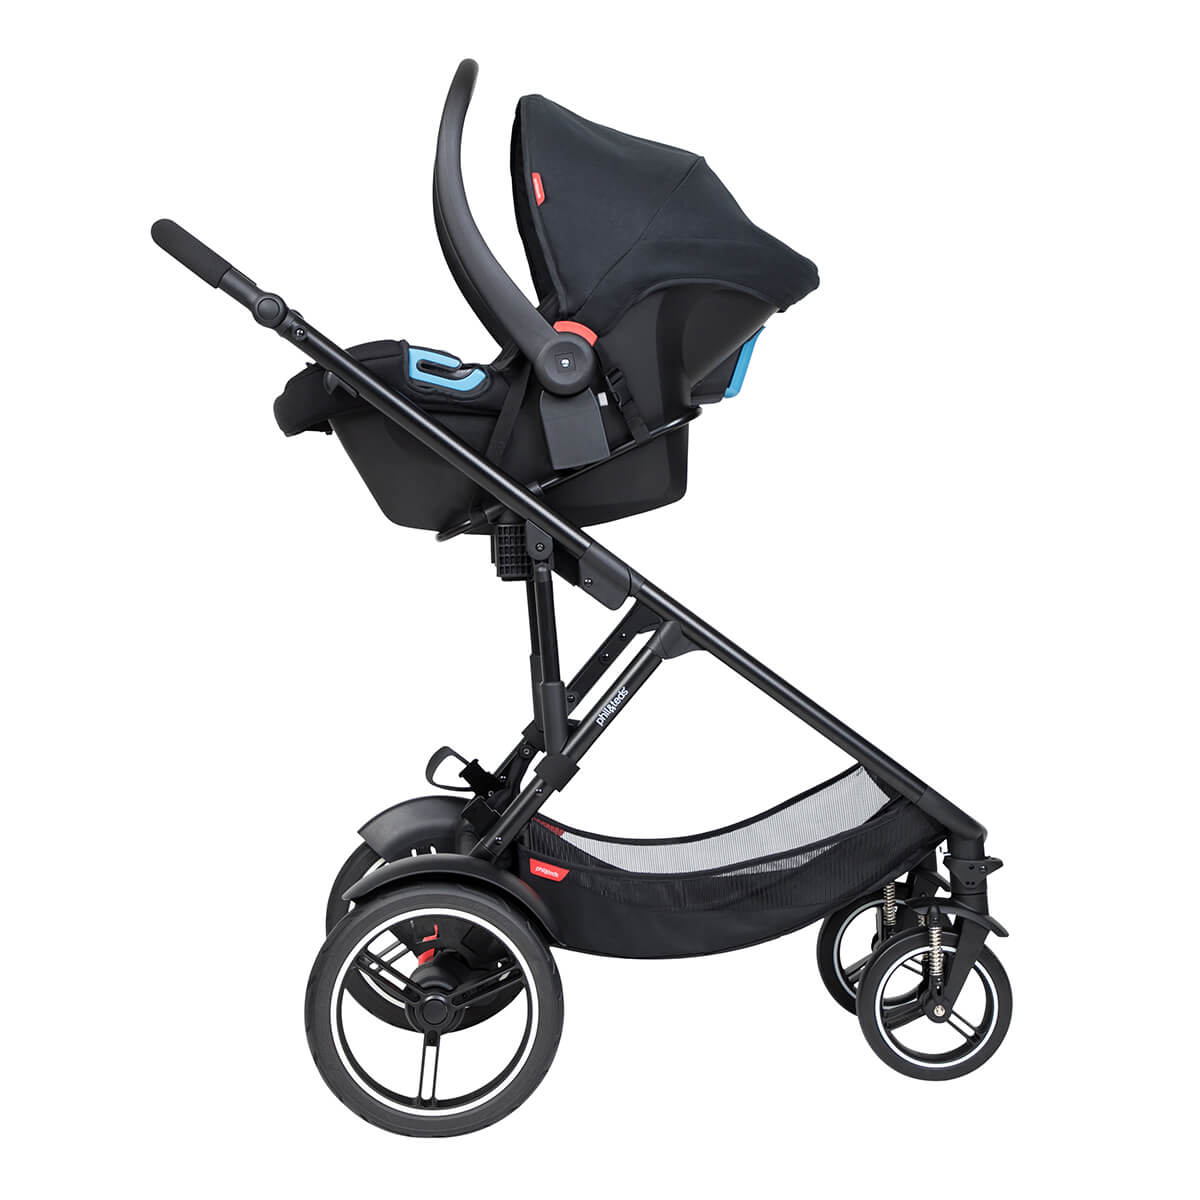 https://cdn.accentuate.io/4511397118049/19793938874538/philteds-voyager-buggy-with-travel-system-in-parent-facing-mode-v1626485394597.jpg?1200x1200